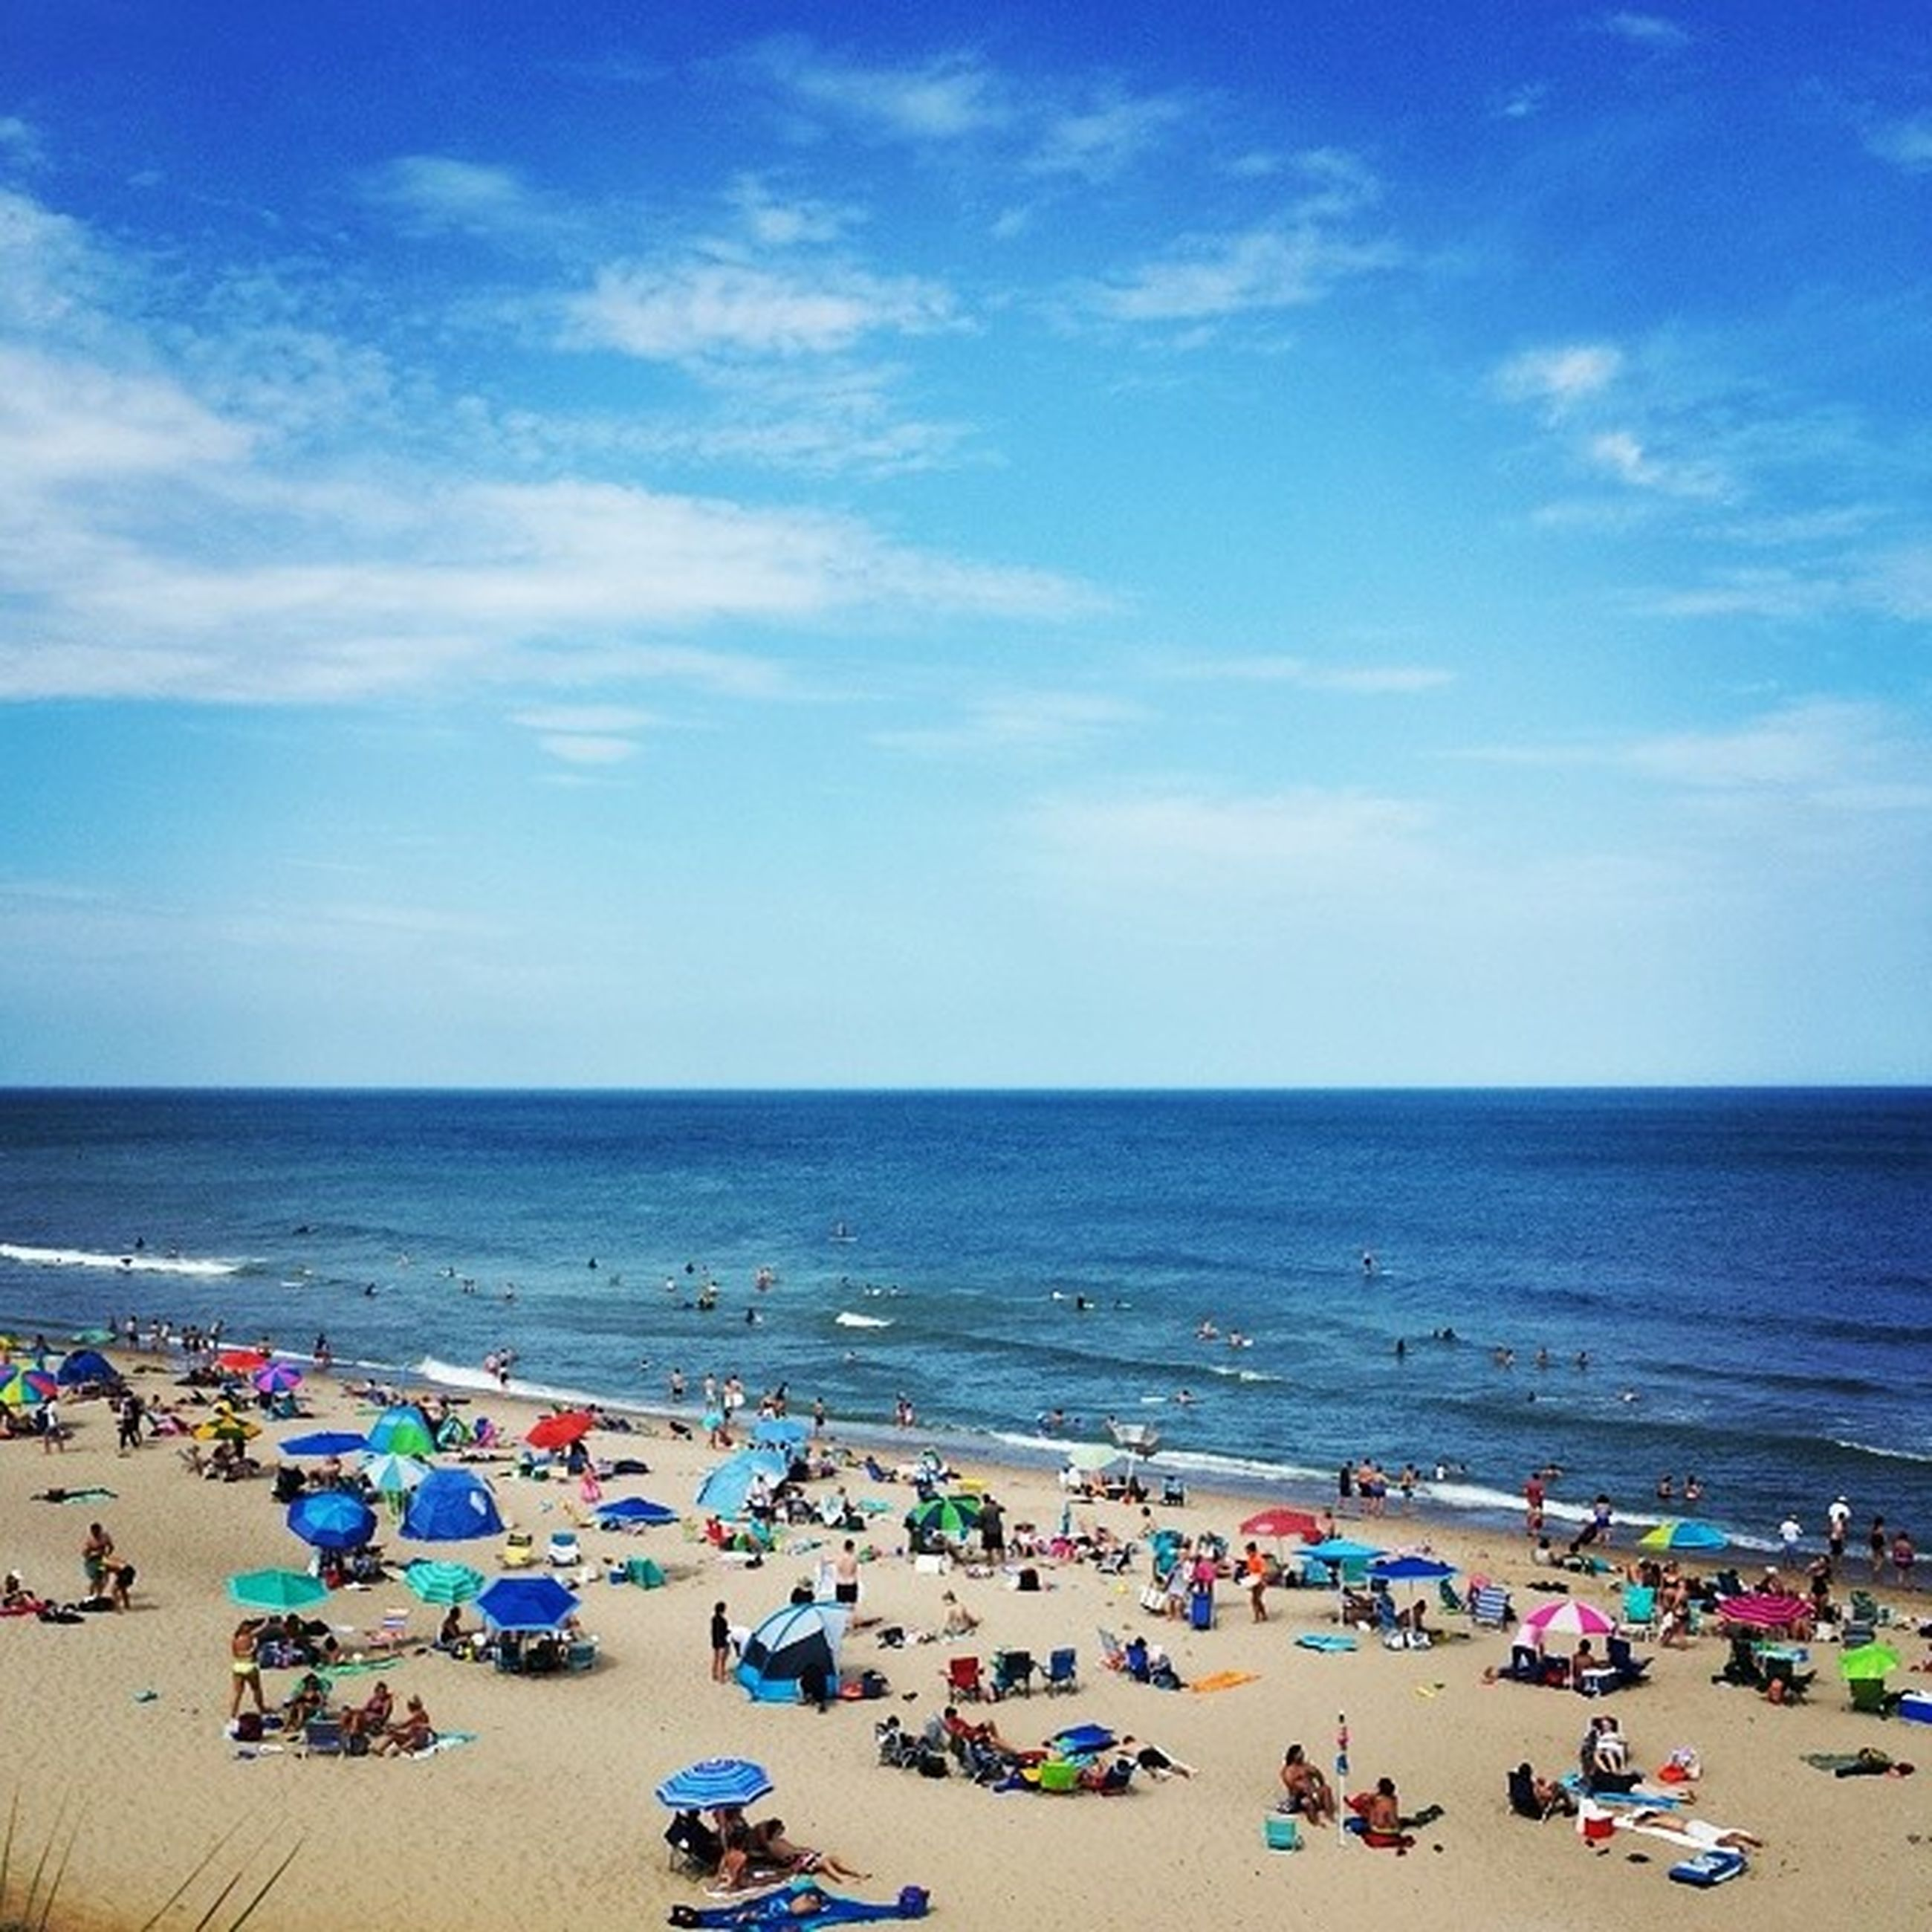 sea, beach, horizon over water, large group of people, water, shore, sand, vacations, sky, relaxation, leisure activity, mixed age range, summer, person, lifestyles, enjoyment, blue, beach umbrella, scenics